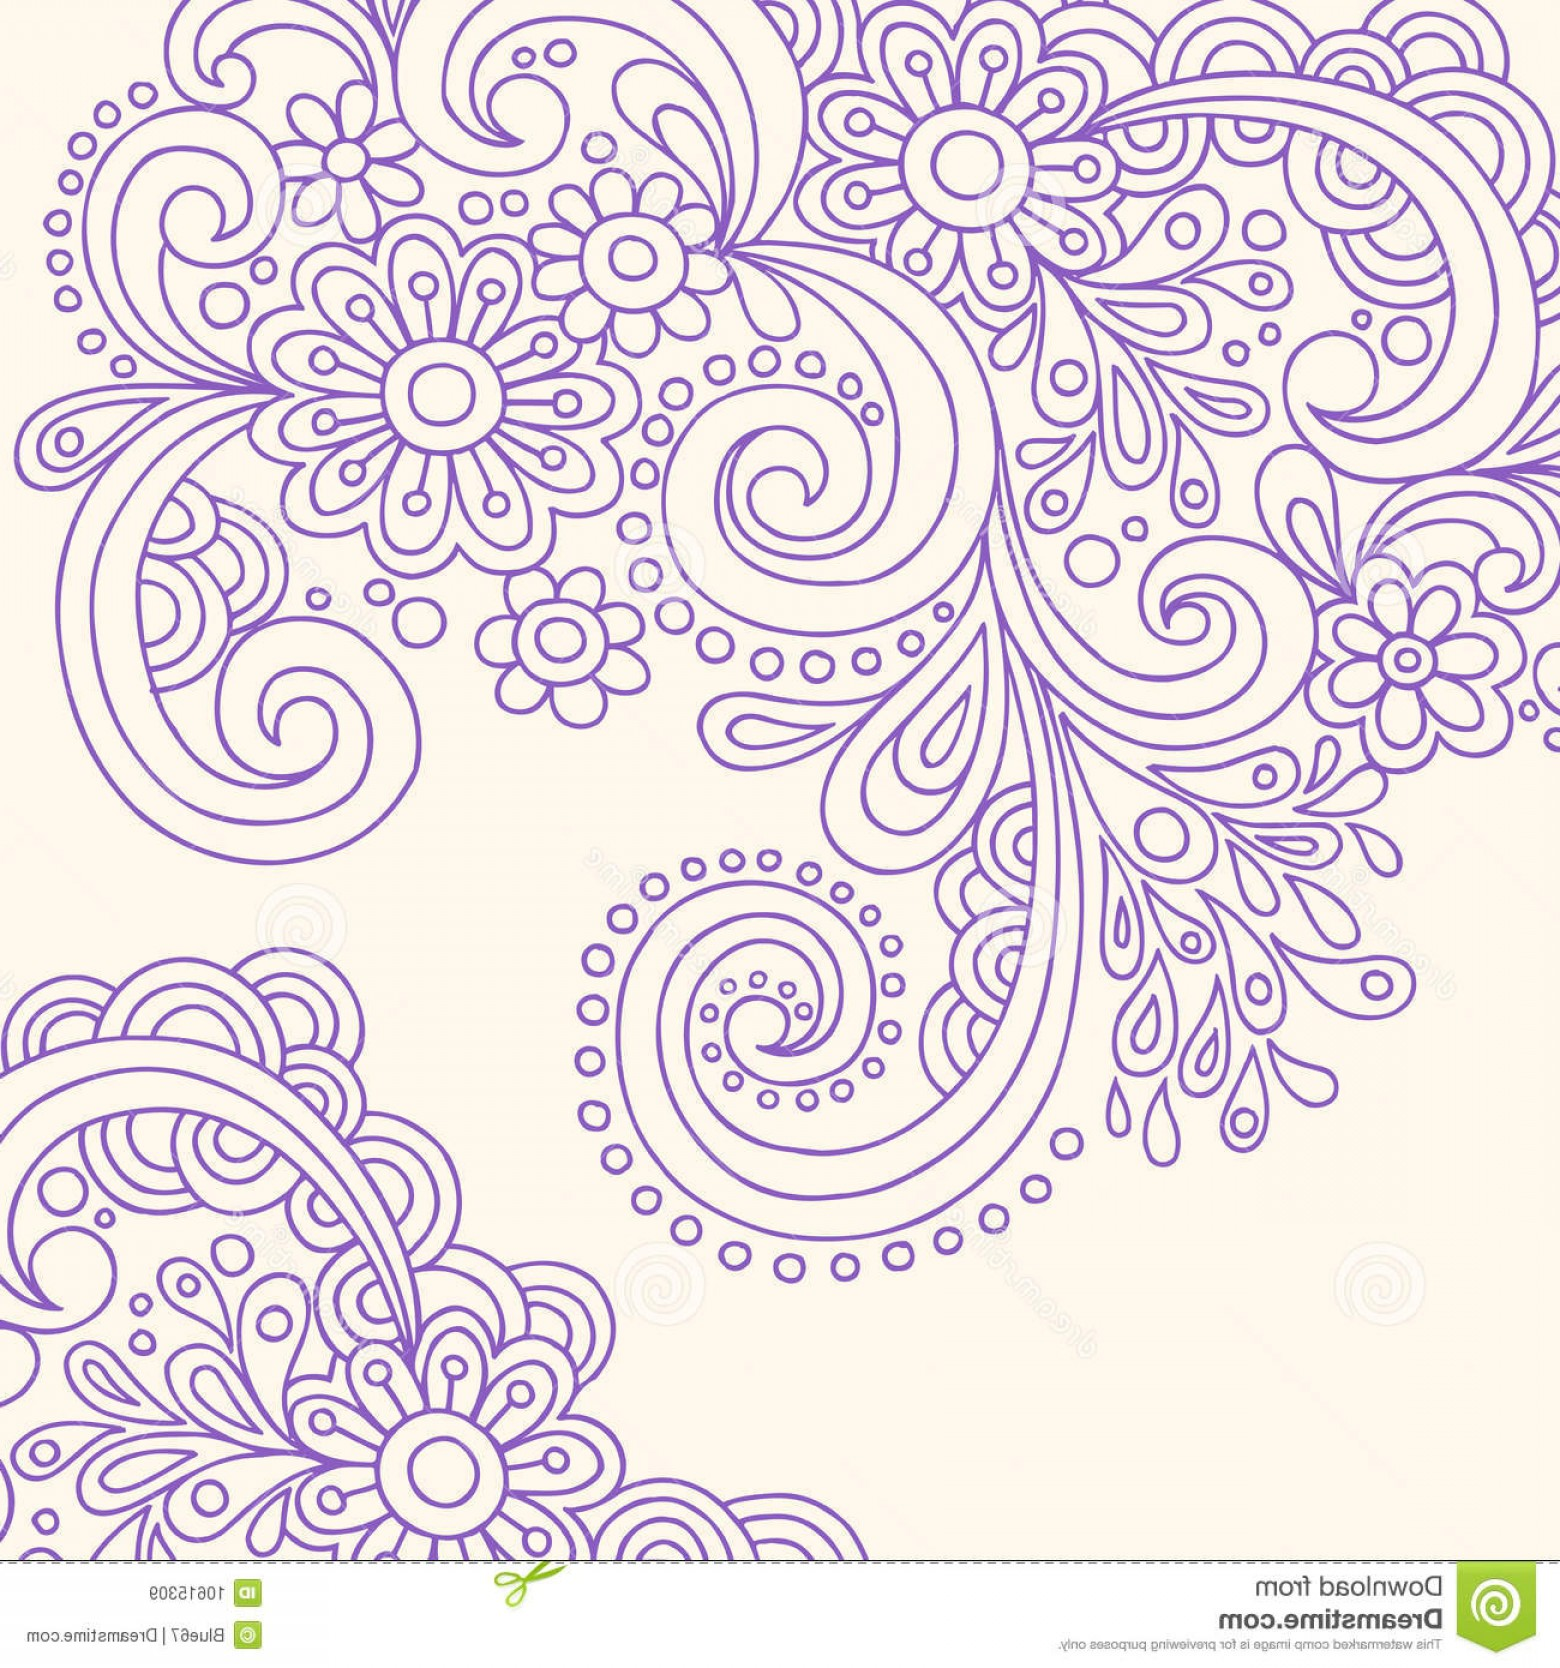 Paisley Swirl Flower Vector: Royalty Free Stock Images Henna Abstract Paisley Flower Doodle Vector Image